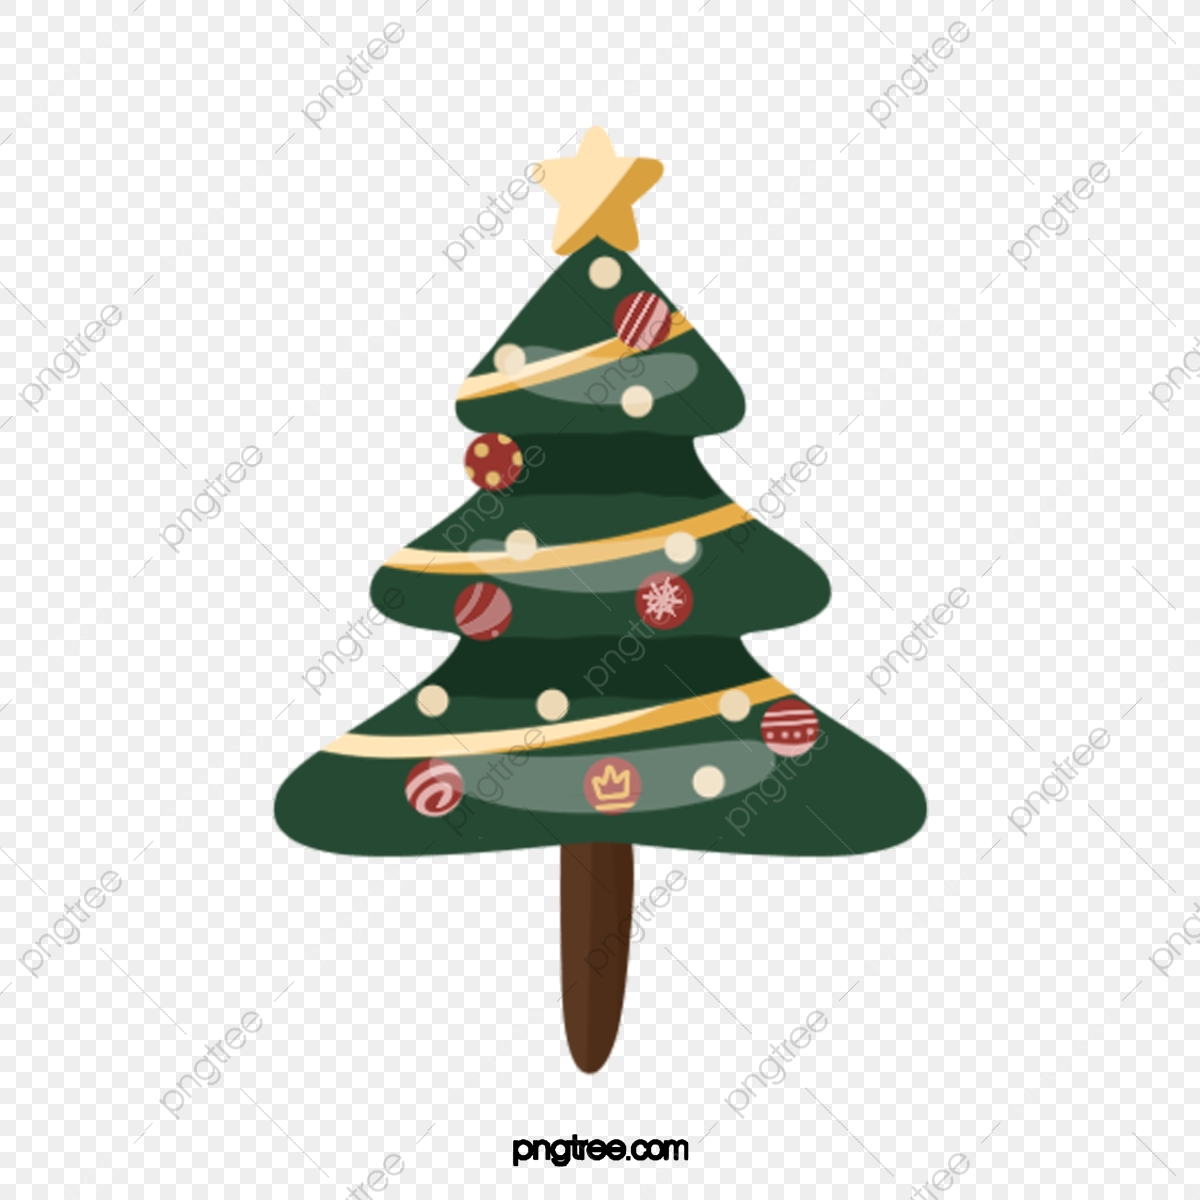 Hand Drawn Western Christmas Tree Illustration Elements Hand Painted Occident Christmas Png Transparent Clipart Image And Psd File For Free Download